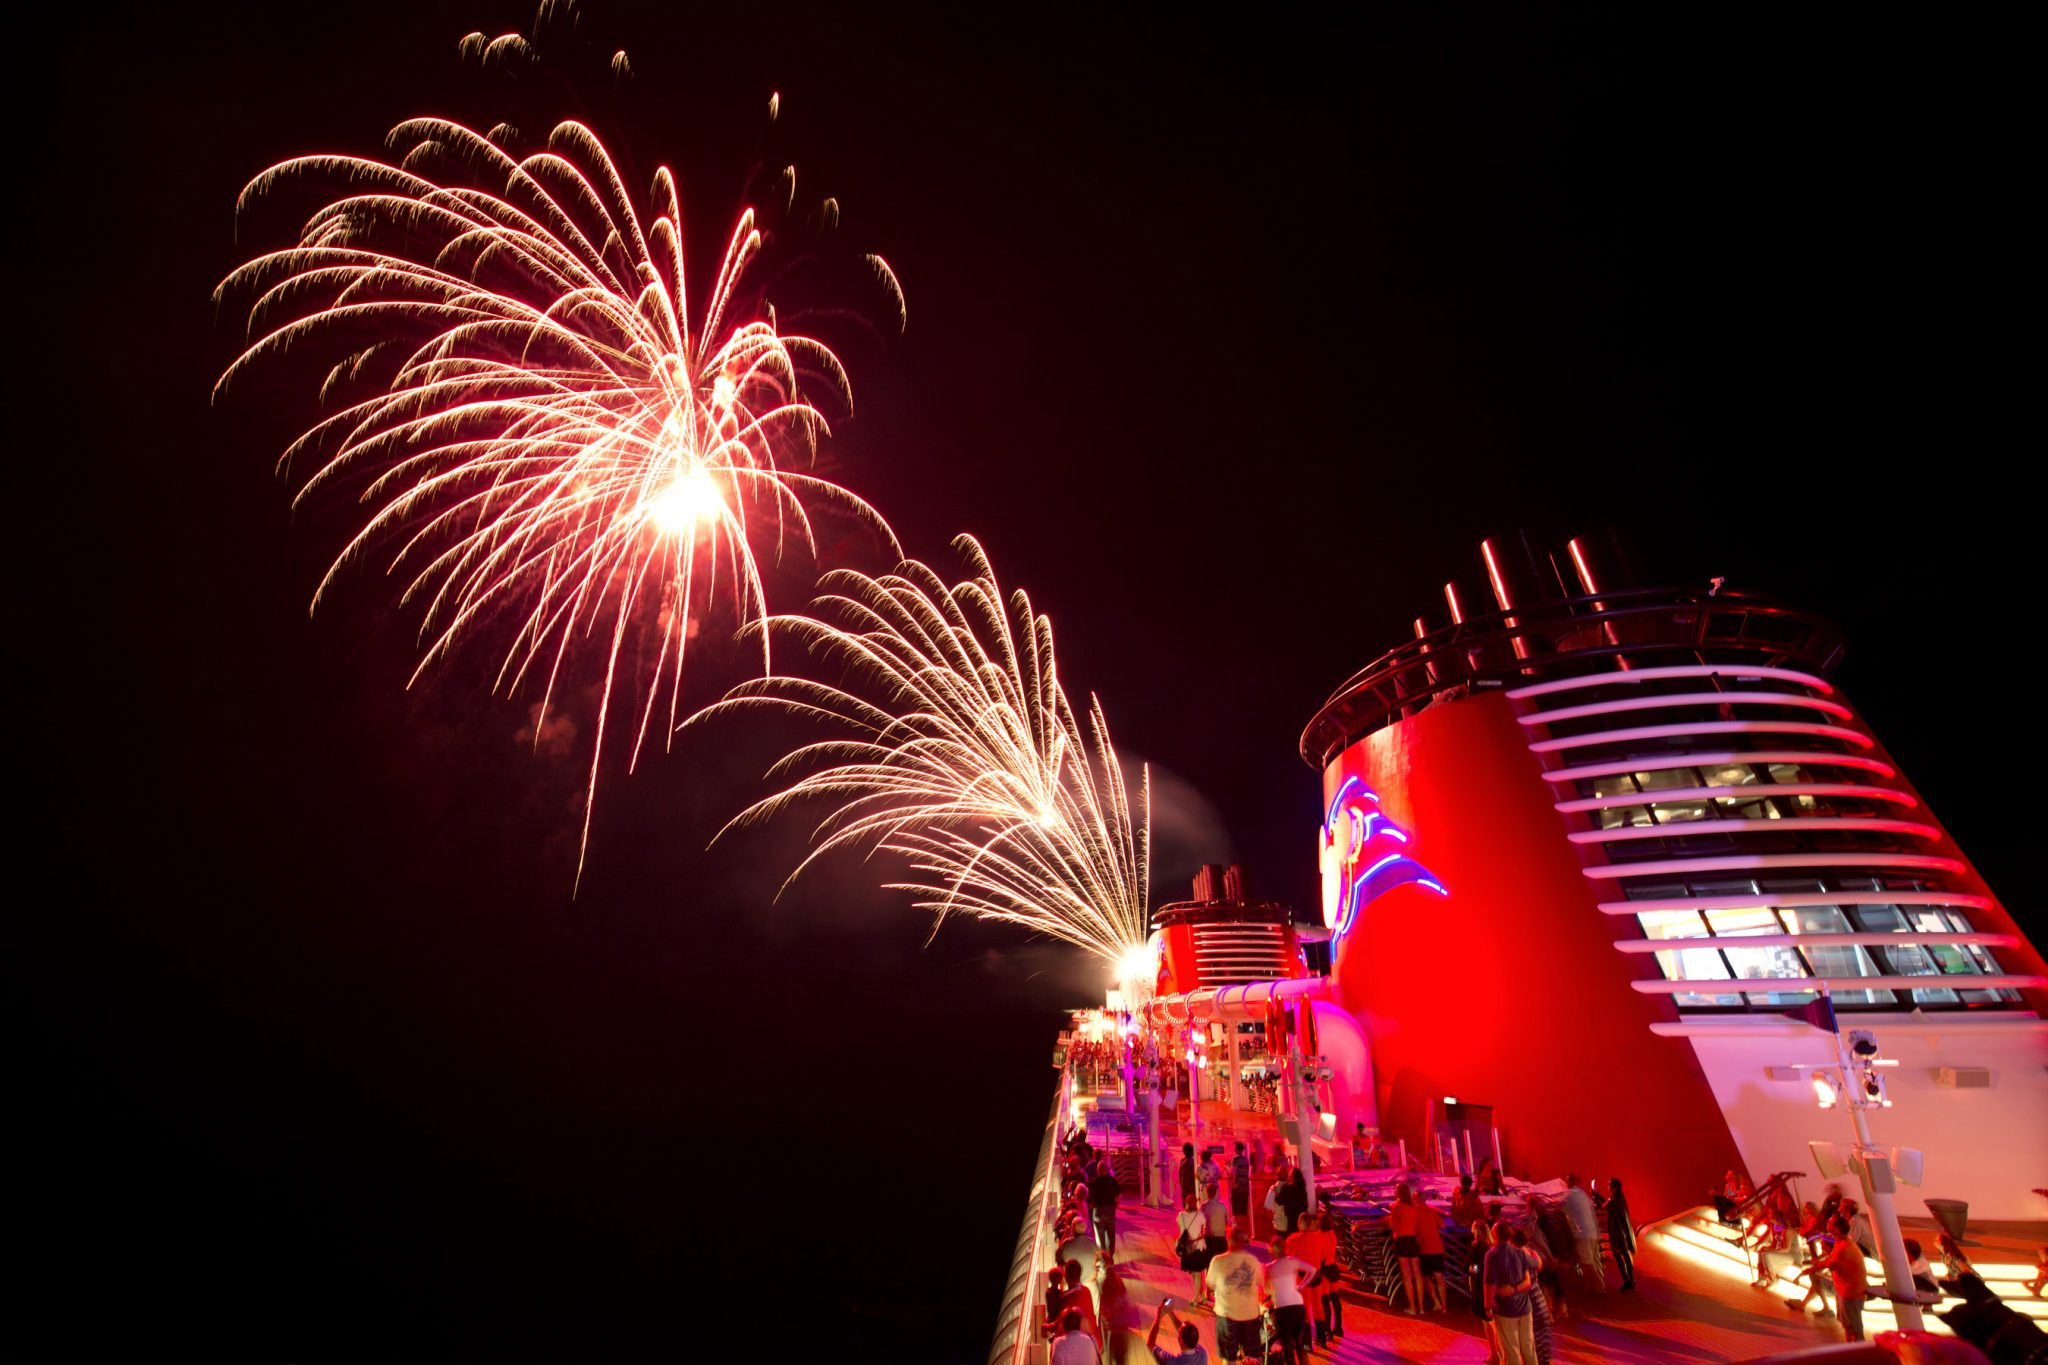 """Top 10 Things to Do on Disney Fantasy featured by top US Disney blogger, Marcie and the Mouse: Disney Cruise Line lights up the sky to dazzle guests with the largest, awe-inspiring fireworks extravaganza presented aboard a cruise ship. The skies above the Disney Fantasy and the Disney Dream explode with brilliant colors during """"Buccaneer Blast!"""" – a pyrotechnic spectacular choreographed to a dramatic score featuring songs from the """"Pirates of the Caribbean"""" movies. (Gregg Newton, photographer)"""